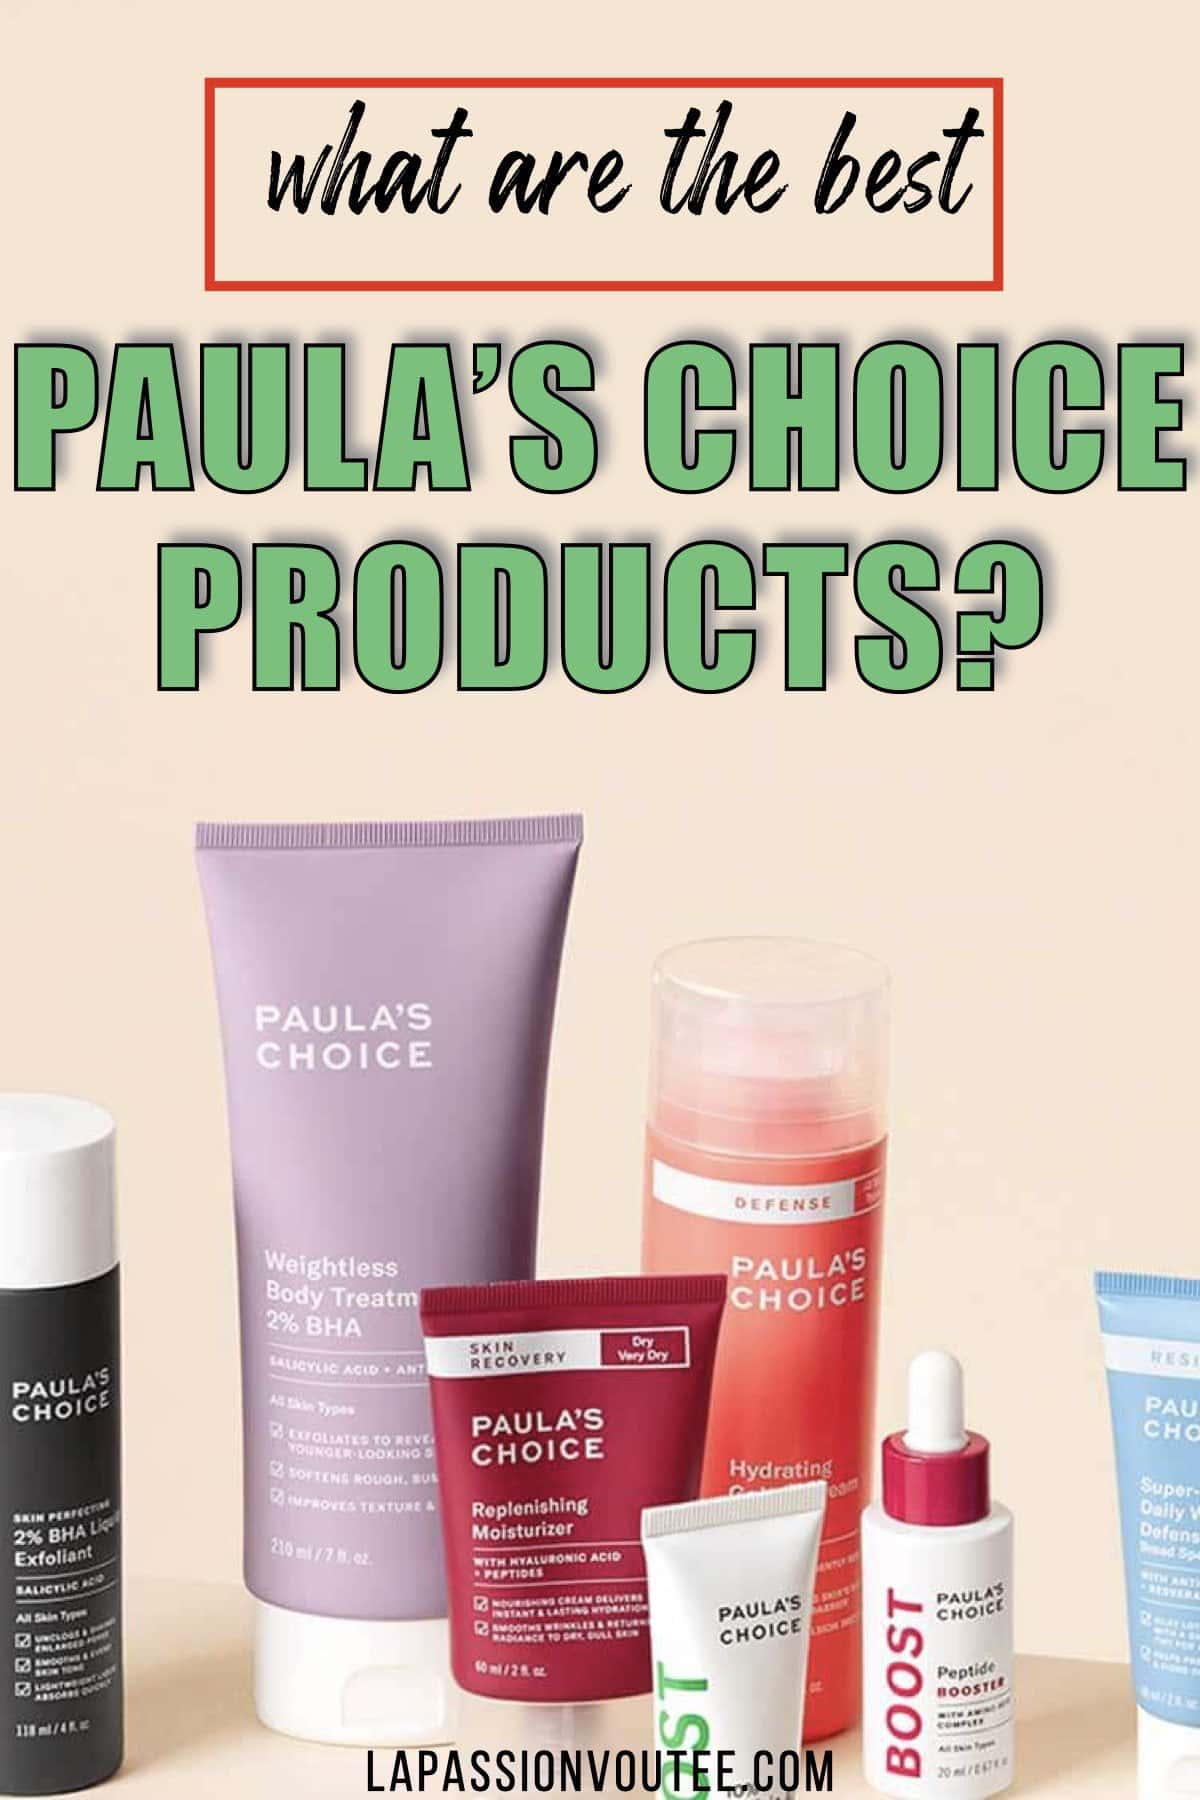 Looking for the best Paula's Choice products? After trying a variety of products from this skincare brand, I recommend trying any one (or all) of these Paula's Choice skincare products.